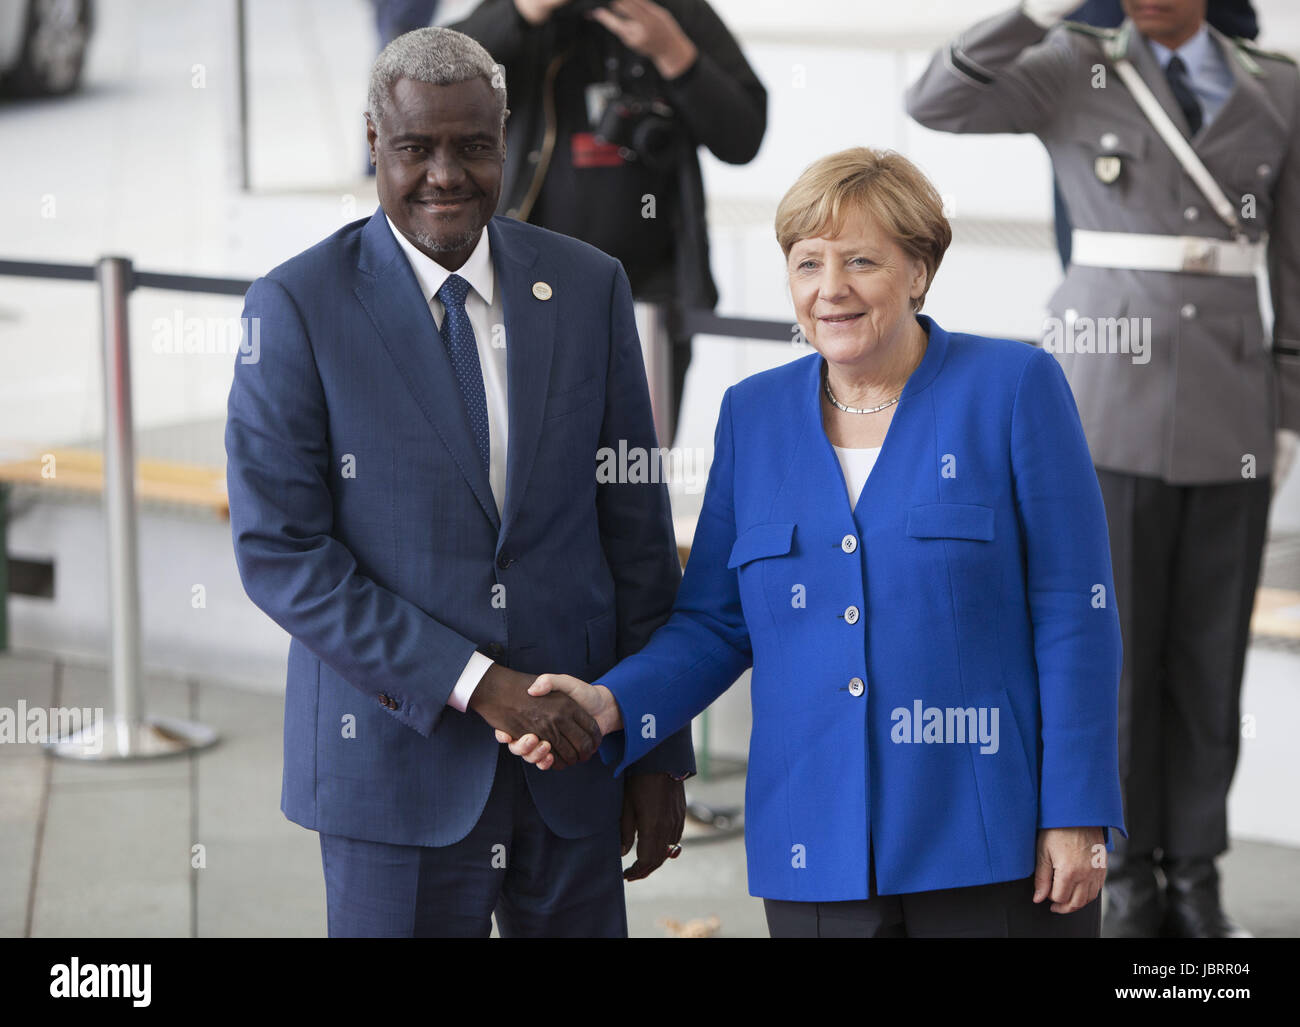 Berlin, Germany. 12th June, 2017. German Chancellor Angela Merkel is Seen Greeting The chairperman of the African - Stock Image